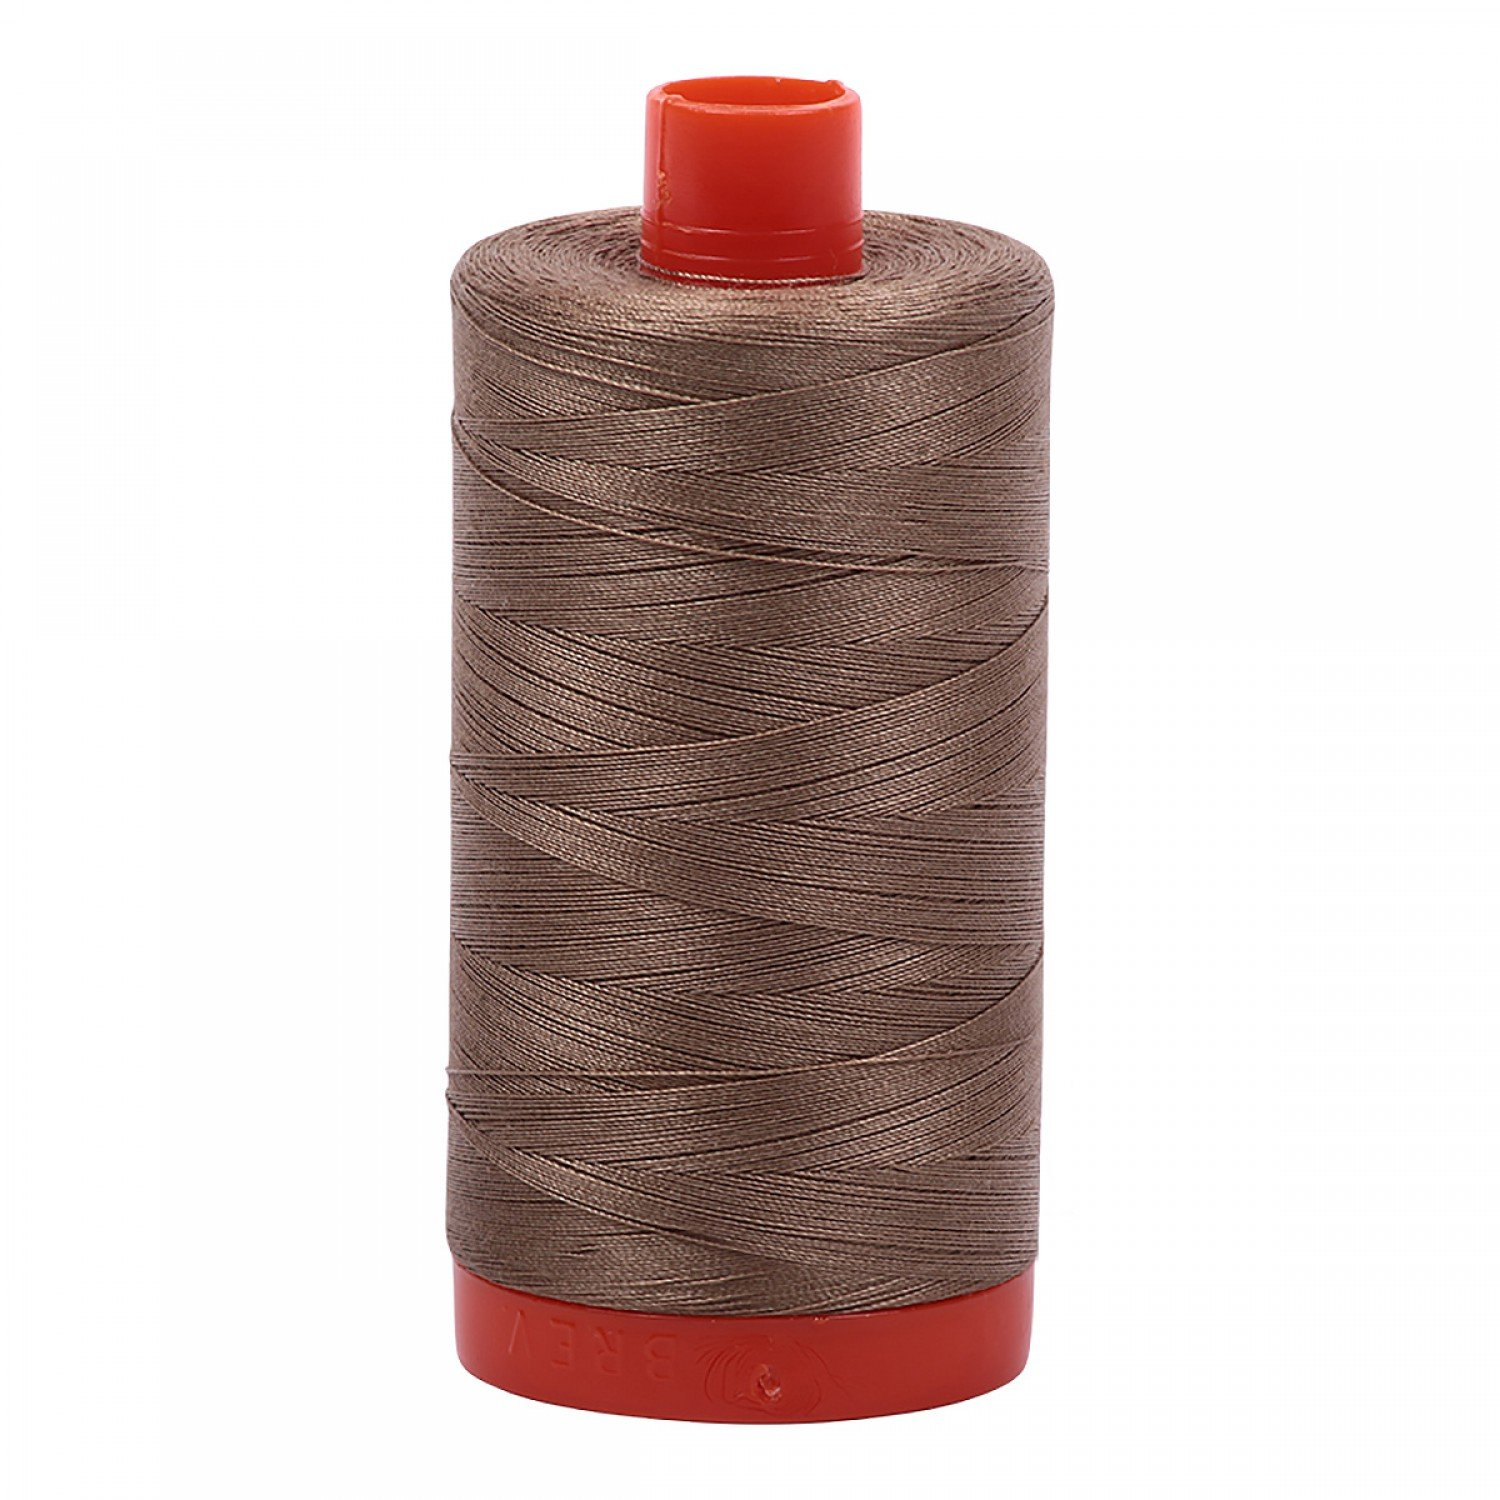 Aurifil Mako Cotton Thread Solid 50wt 1422yds 2370 Sandstone